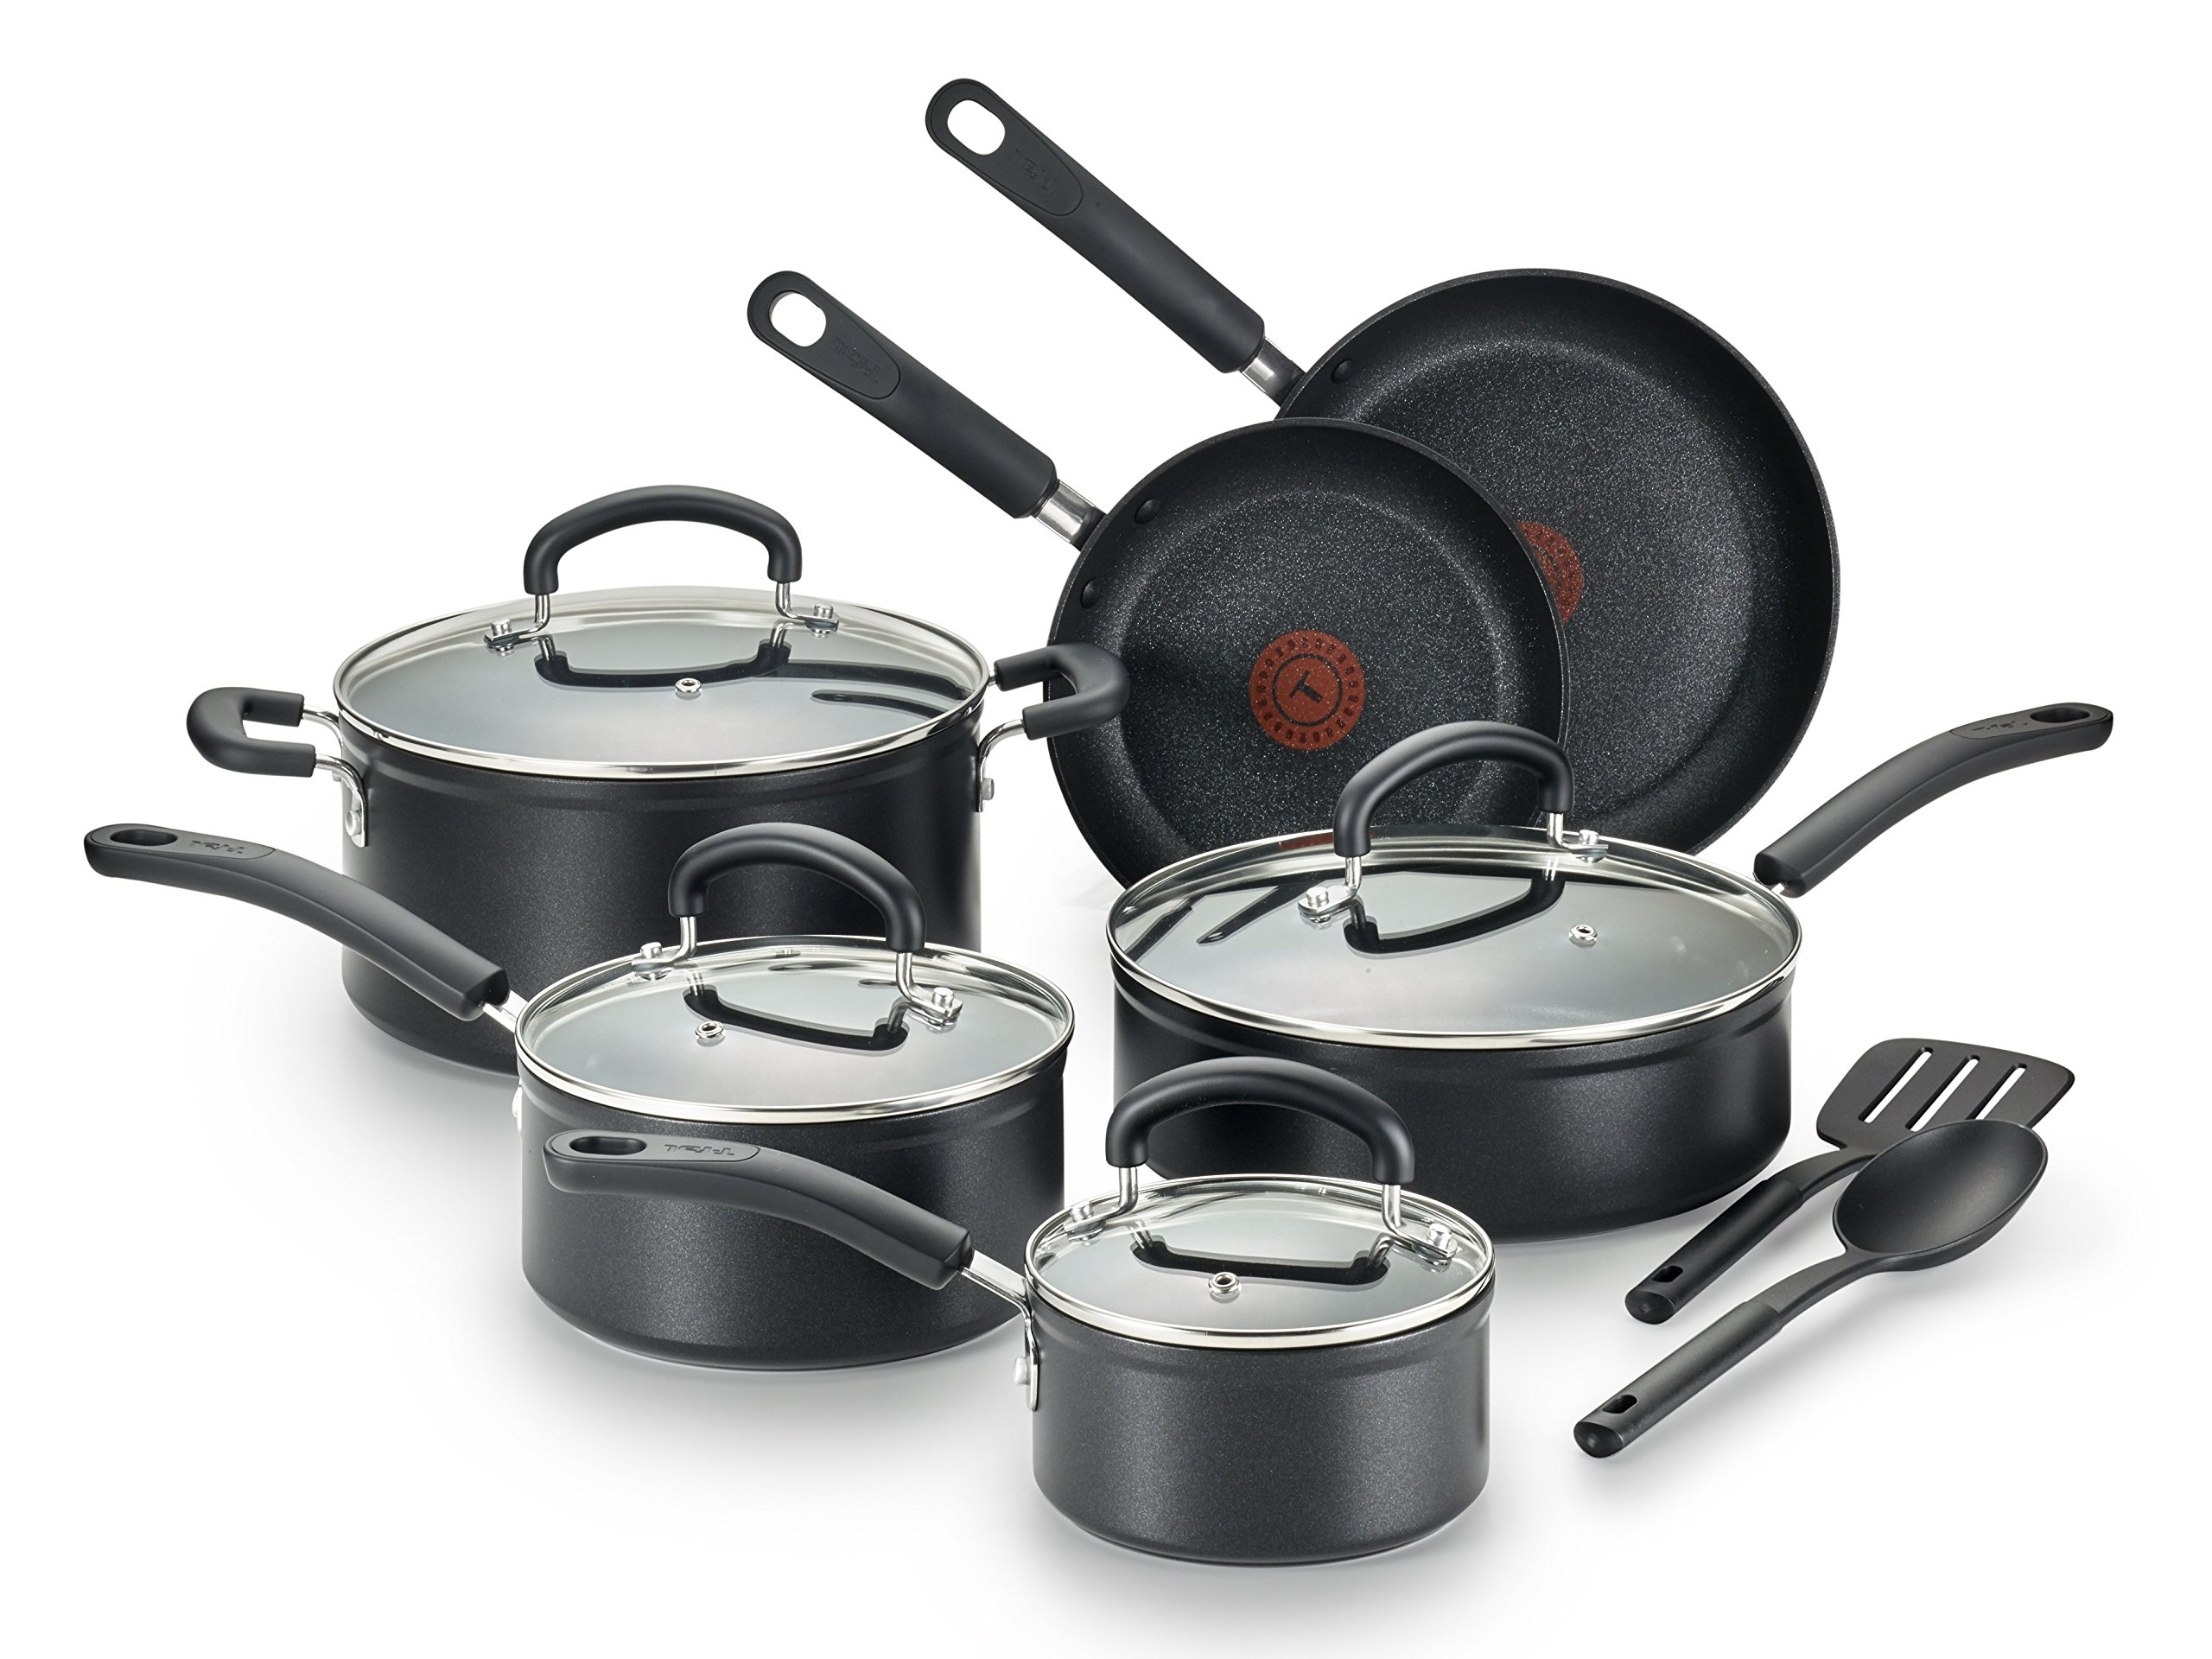 14-Piece T-fal E918SE Ultimate Hard Anodized Durable Nonstick Expert Interior Thermo-Spot Heat Indicator Anti-Warp Base Dishwasher Safe PFOA Free Oven Safe Cookware Set Gray